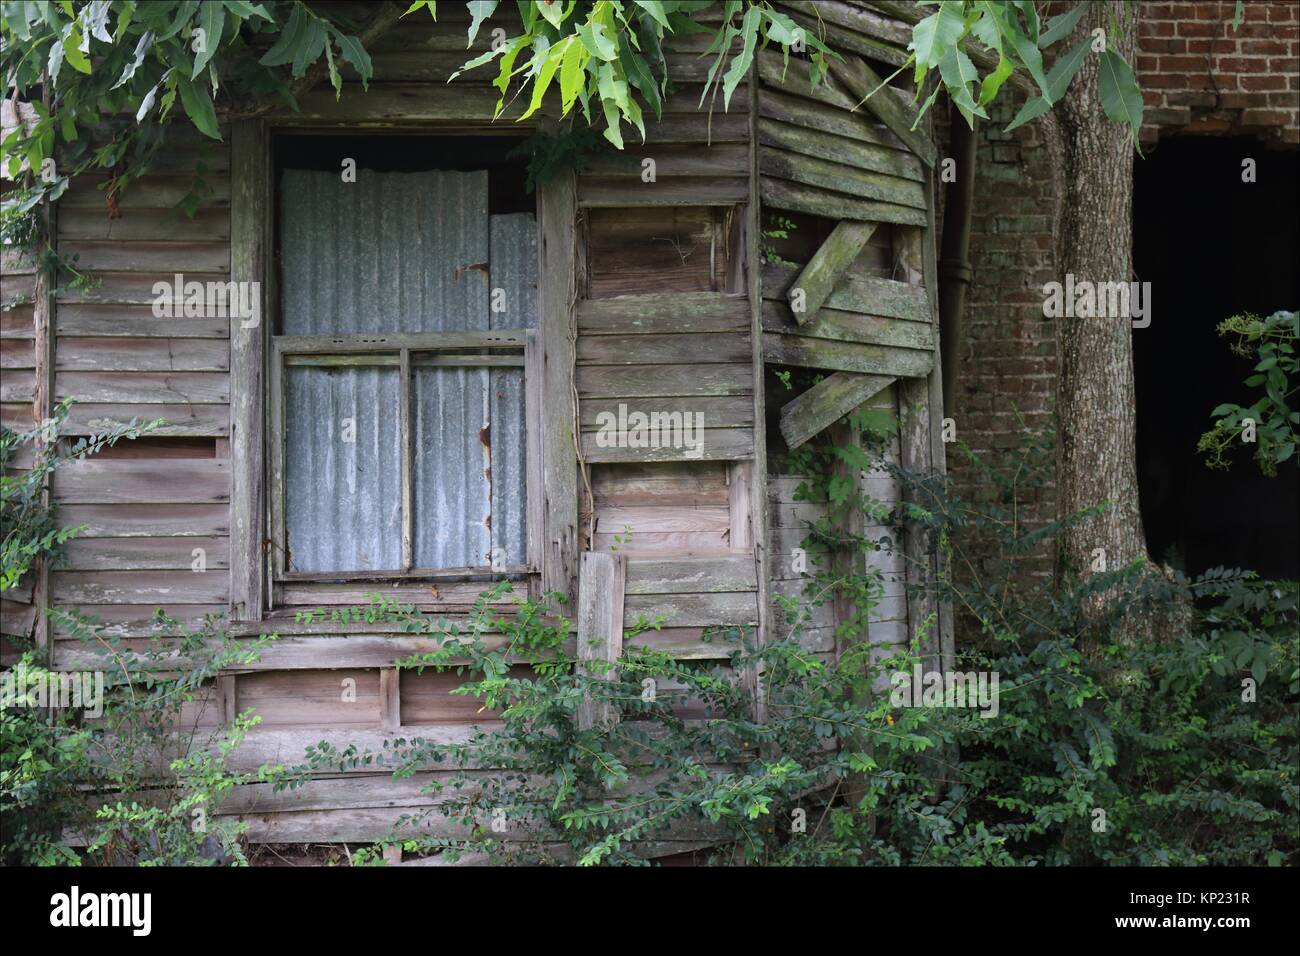 The old white house of the Laura Plantation, in Vacherie, Louisiana, has seen better days. USA - Stock Image